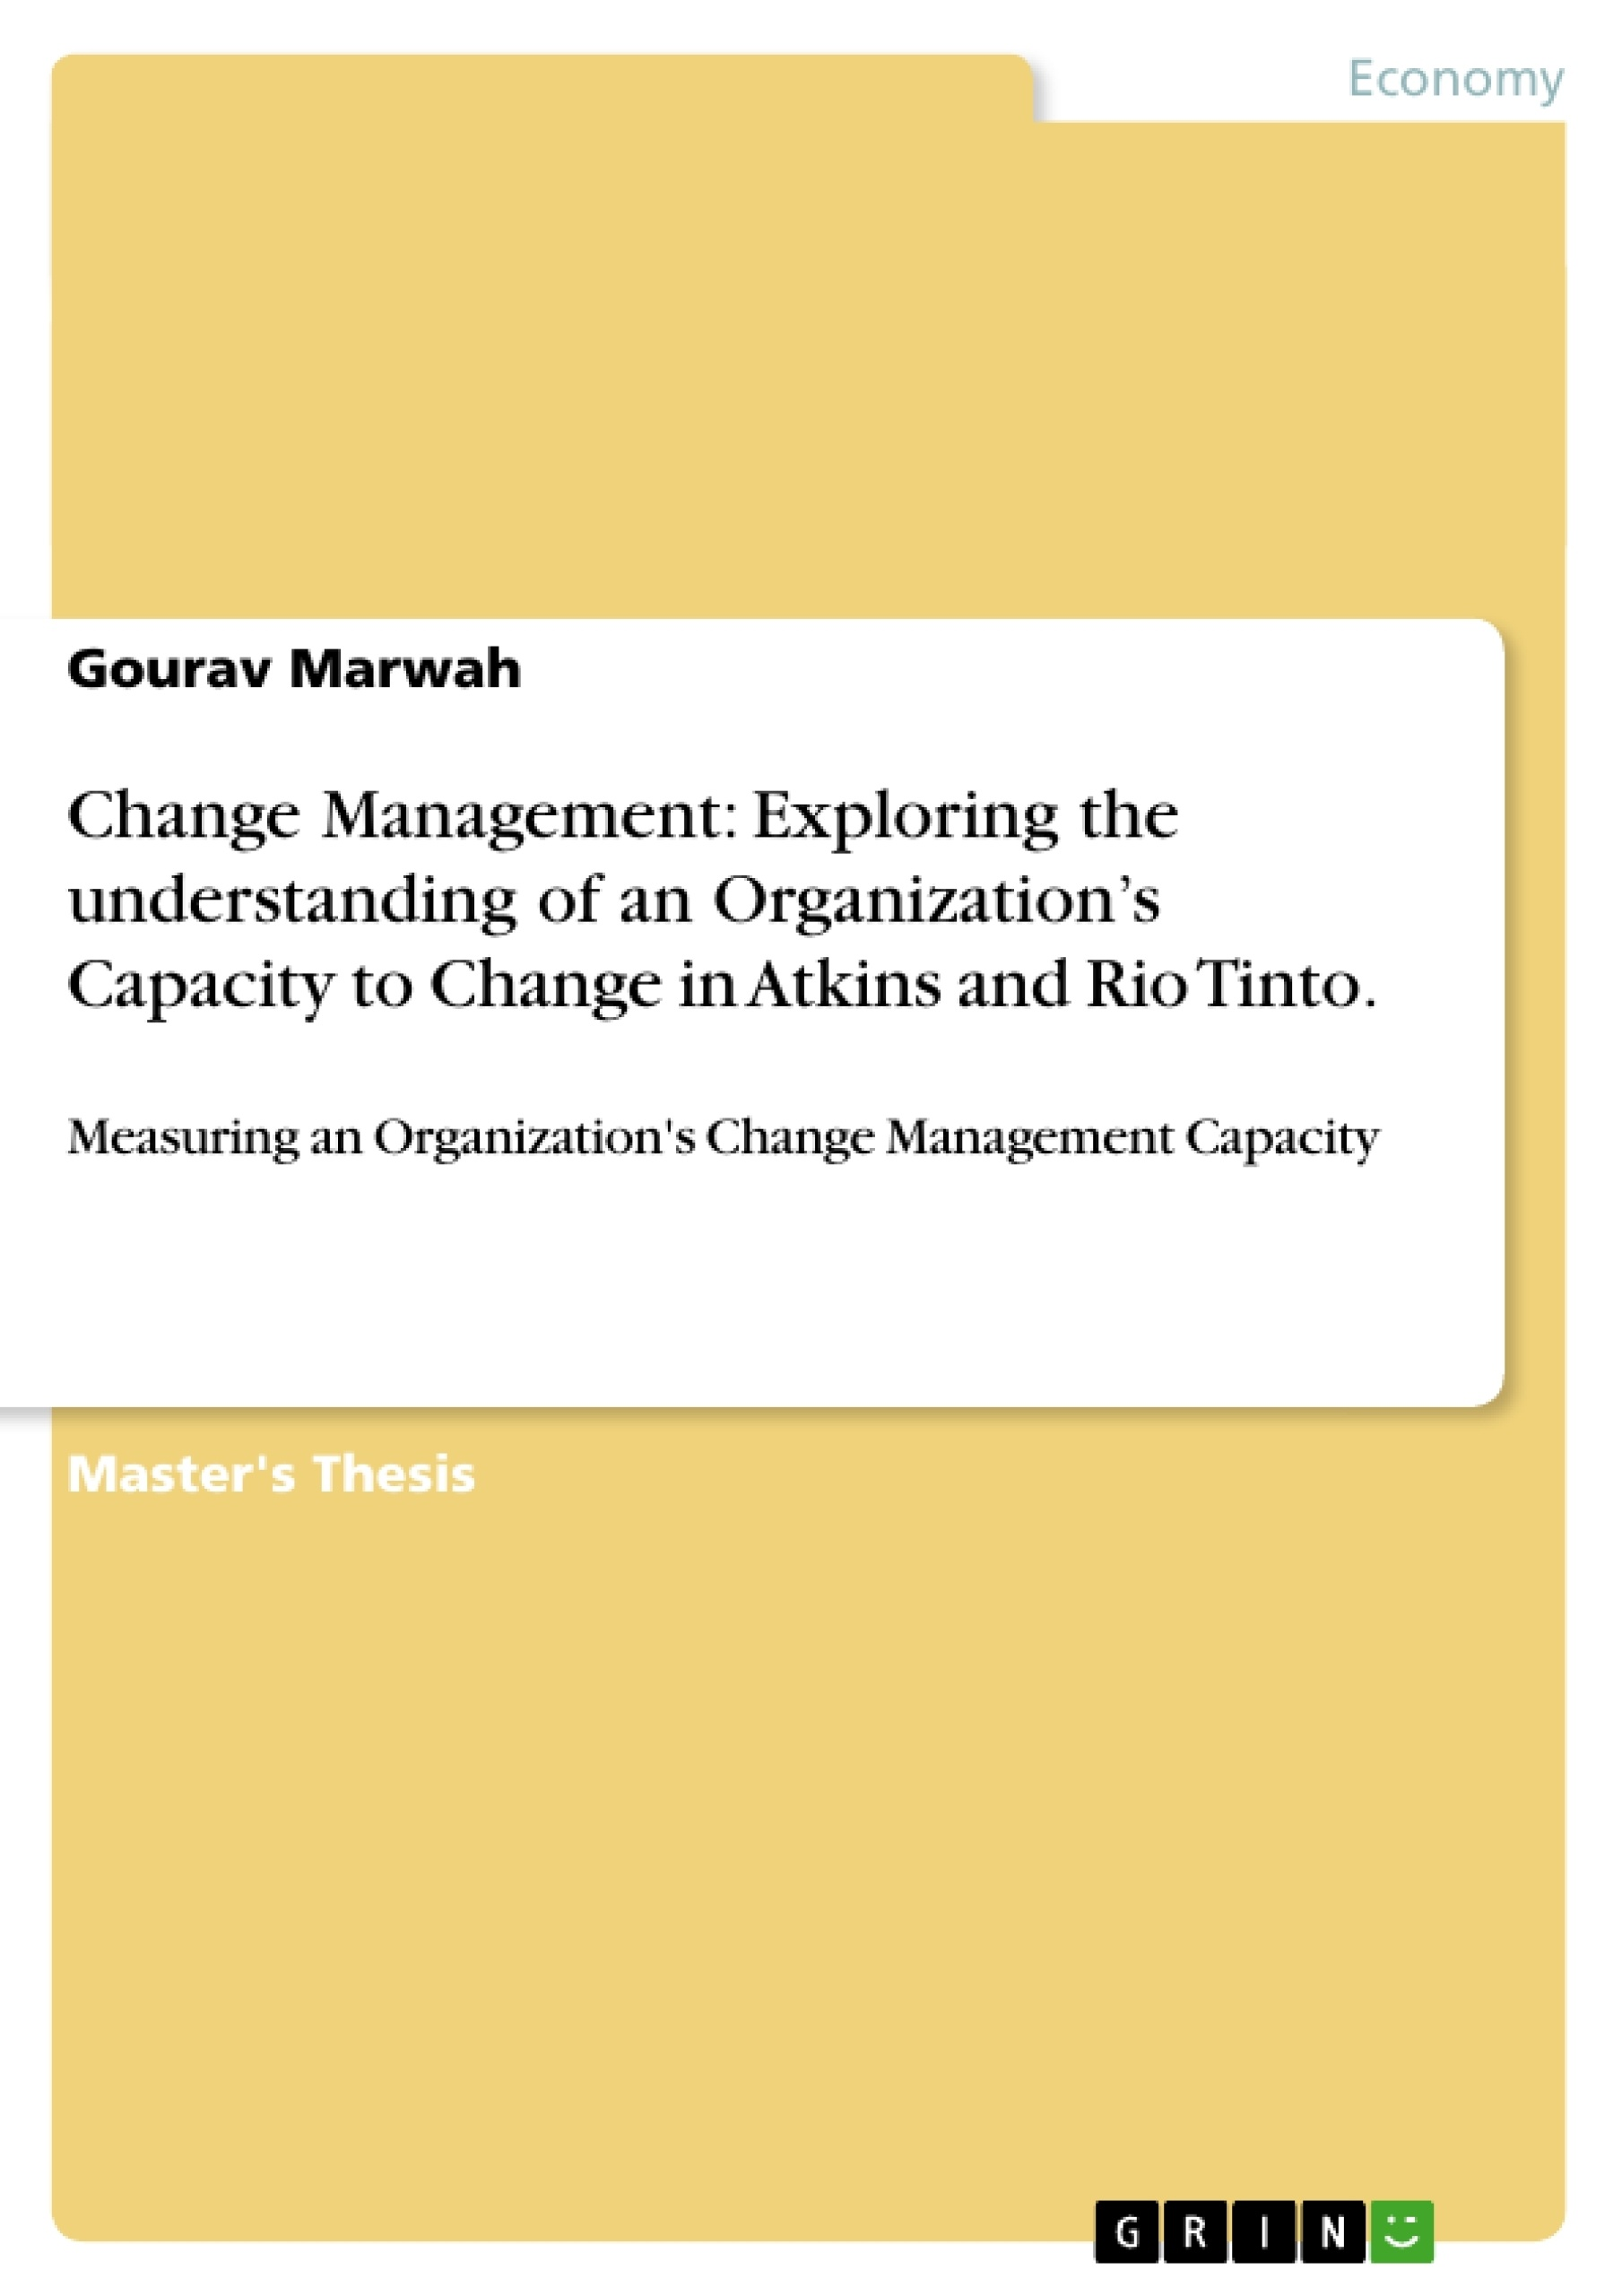 Title: Change Management: Exploring the understanding of an Organization's Capacity to Change in Atkins and Rio Tinto.